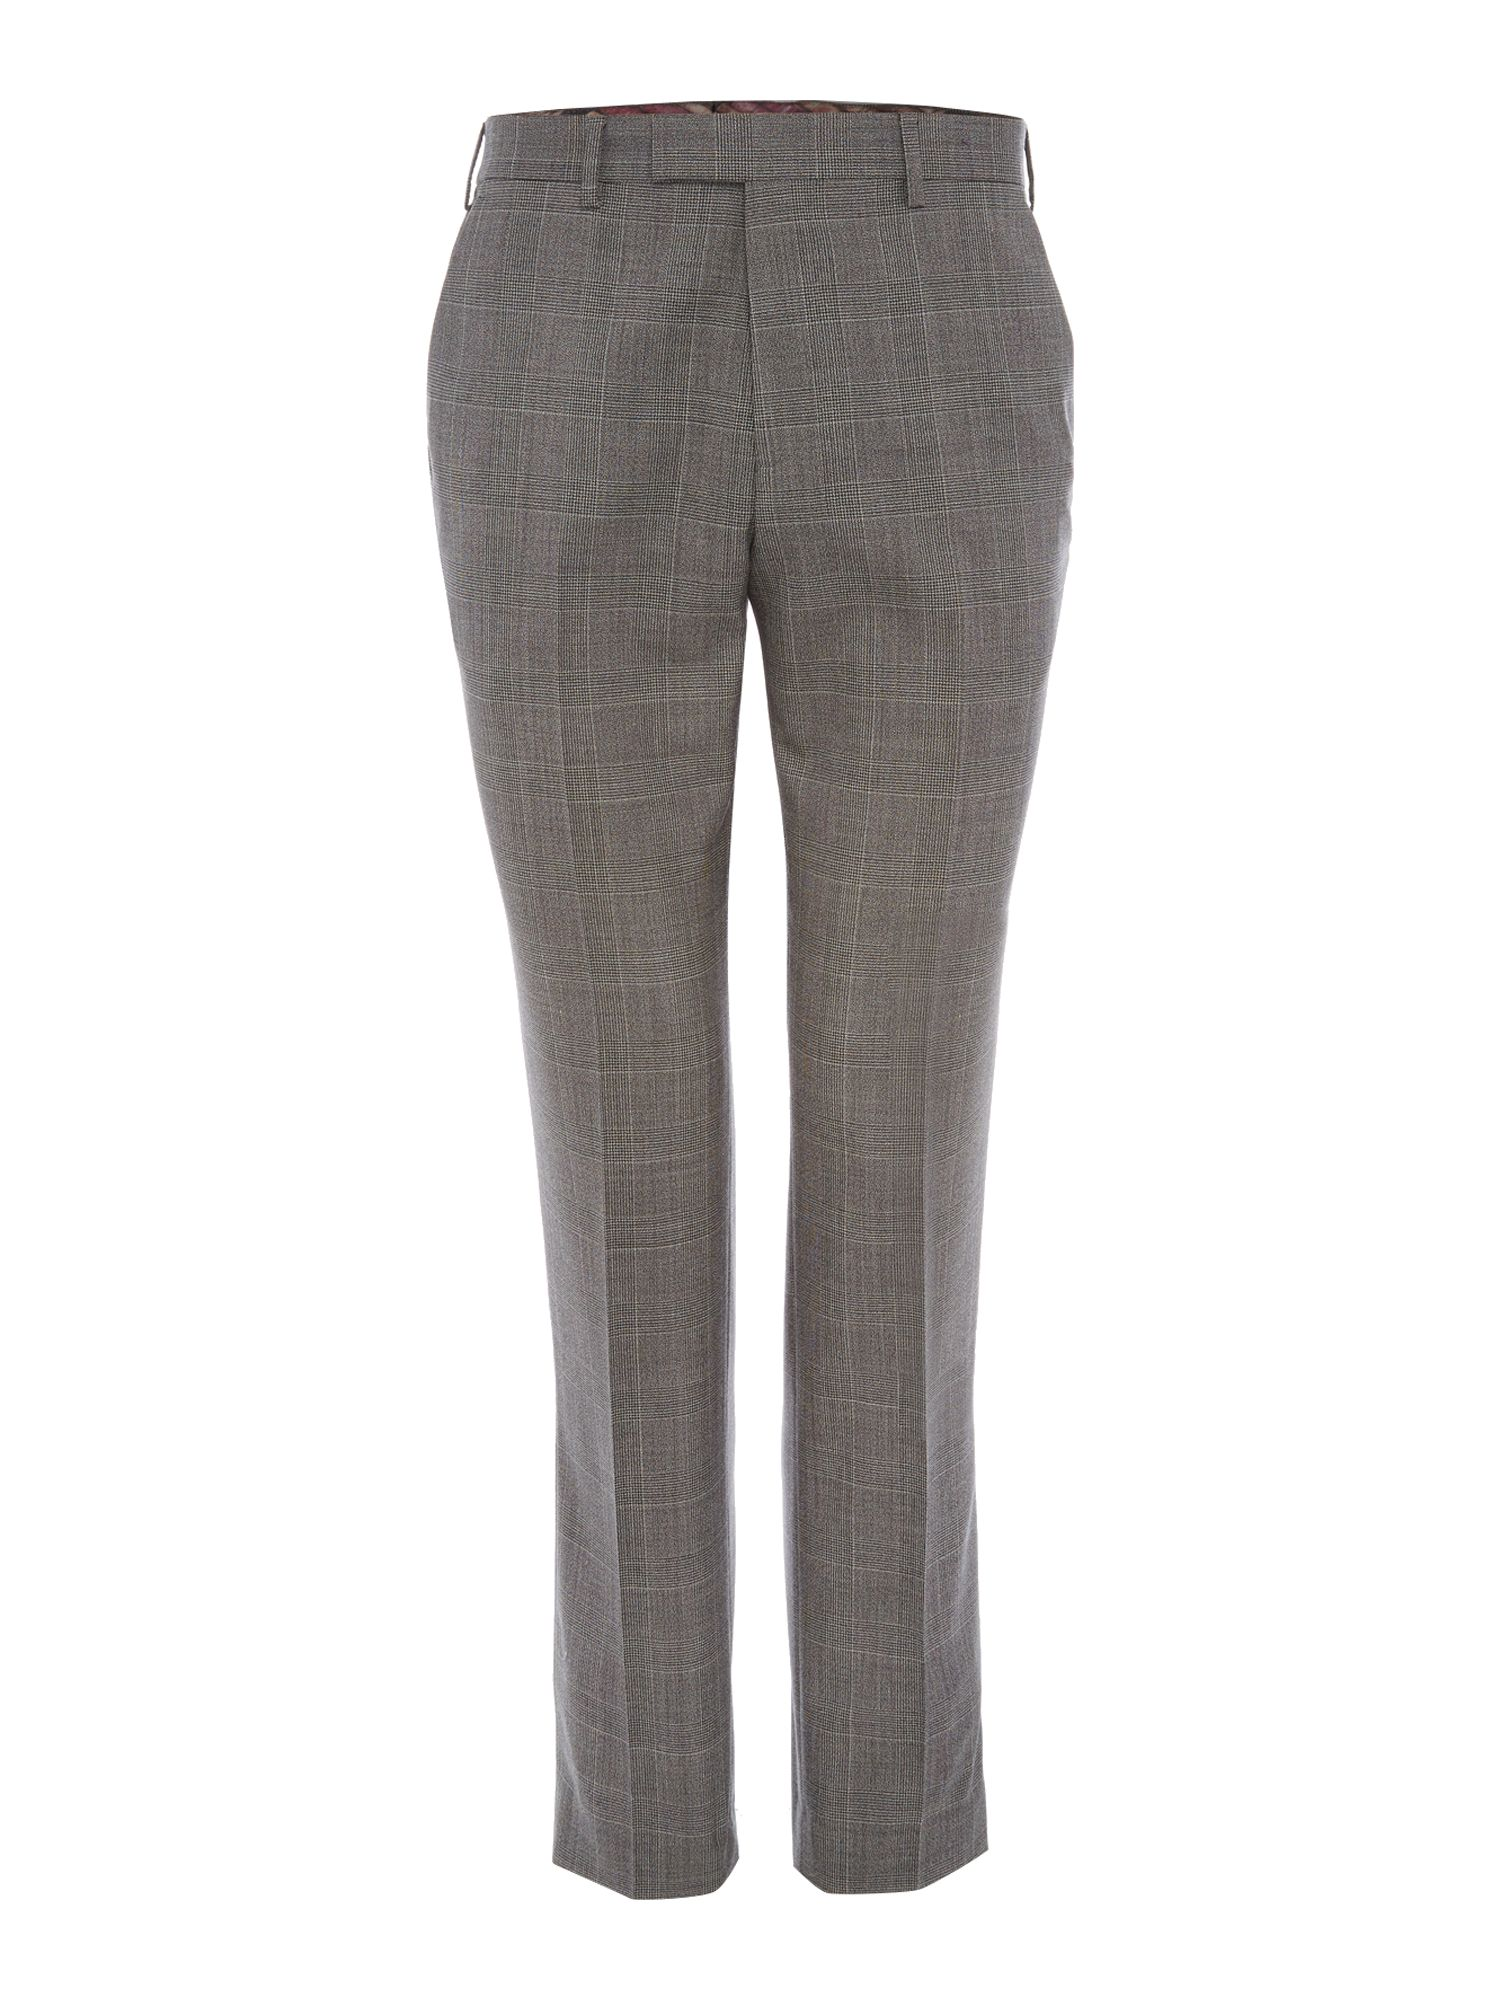 Men's Ted Baker Ted Baker Checked Slim Fit Trousers, Charcoal